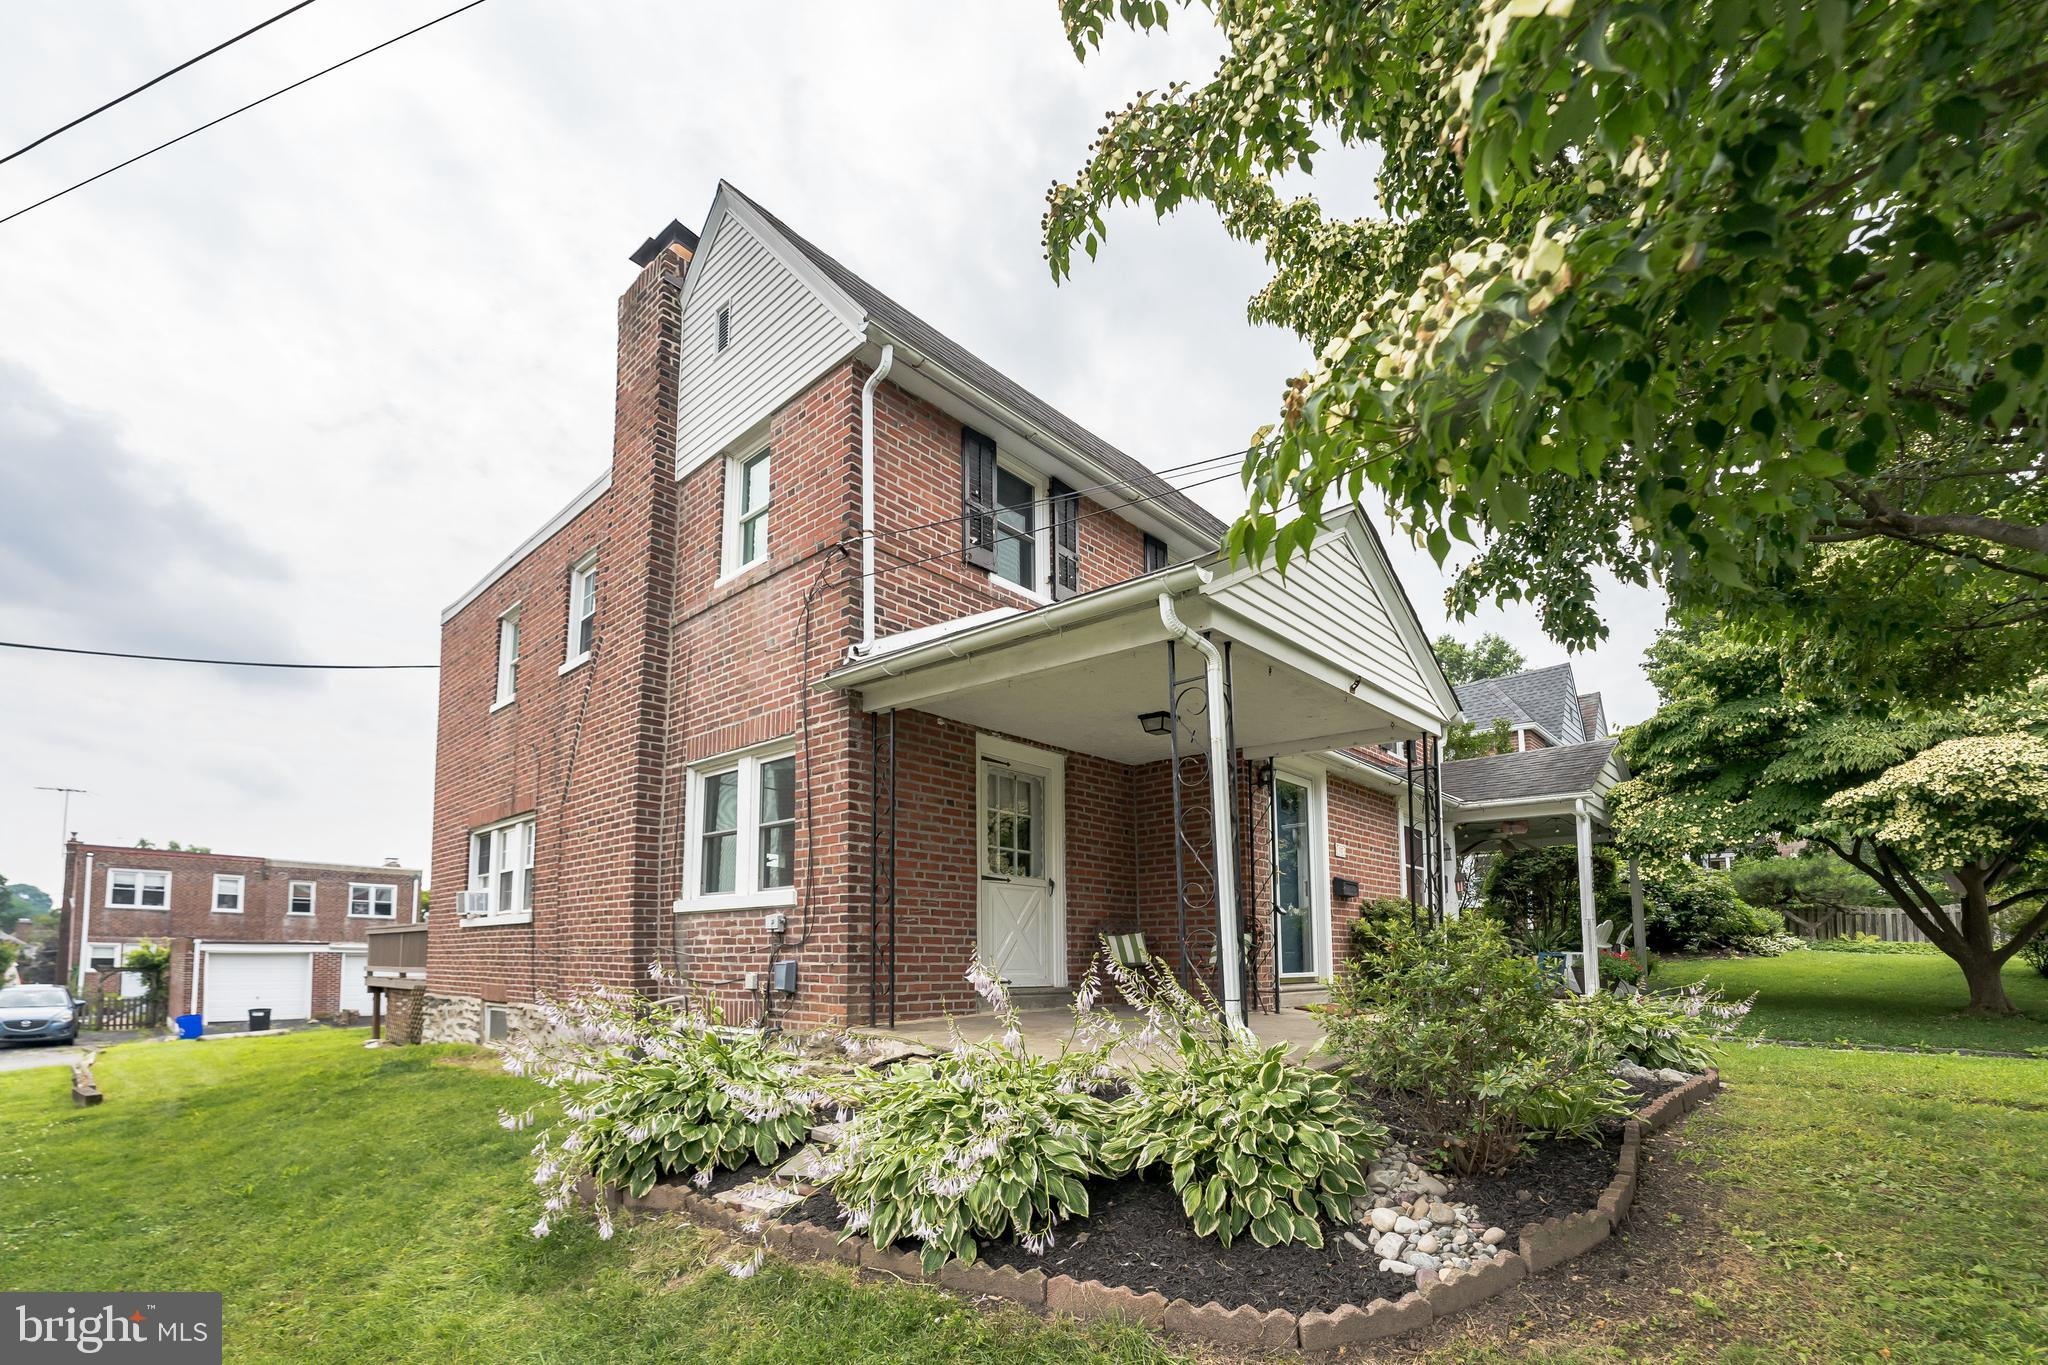 Hello Gorgeous! Welcome to 717 Aubrey Ave. In Ardmore Park.  This 3 bedroom 1 1/2 Bath Twin Is Impressive The Moment You Walk up Entryway.  Enter through the Front Door Vestibule with Coat Closet or From the Charming Front Porch!  Newly Finished Hardwood Floors Throughout and a Brick Wood Burning Fireplace Make This Living Area Beautiful and Cozy.  Continue on To the Formal Dining Room which Opens To The Gorgeous Kitchen.  New Cabinetry, Granite Countertops, Stainless Steel Sink and Appliances with Breakfast Bar Will Sure to Please.  If Outdoor Dining is Your Preference, Serve on the Large Back Deck!  Head to The 2nd Floor Also With Newly Finished Hardwood Throughout, A Large Master Bedroom with New Full Bath with Radiant Heated Floor and Two More Ample Sized Rooms.  The Lower Level is a Walkout and Features a Powder Room and  Flex Space with Closet.  New Roof and Water Heater! Walking Distance to Septa Train Station, Merion Golf Course, Top Ranked Chestnutwold Elementary,  Normandy Park and Botanical Gardens and Ardmore Playground and Fields.  A Quick Drive to Philadelphia and PHL Airport!  Don't Miss Out On This Opportunity To Own In Ardmore!